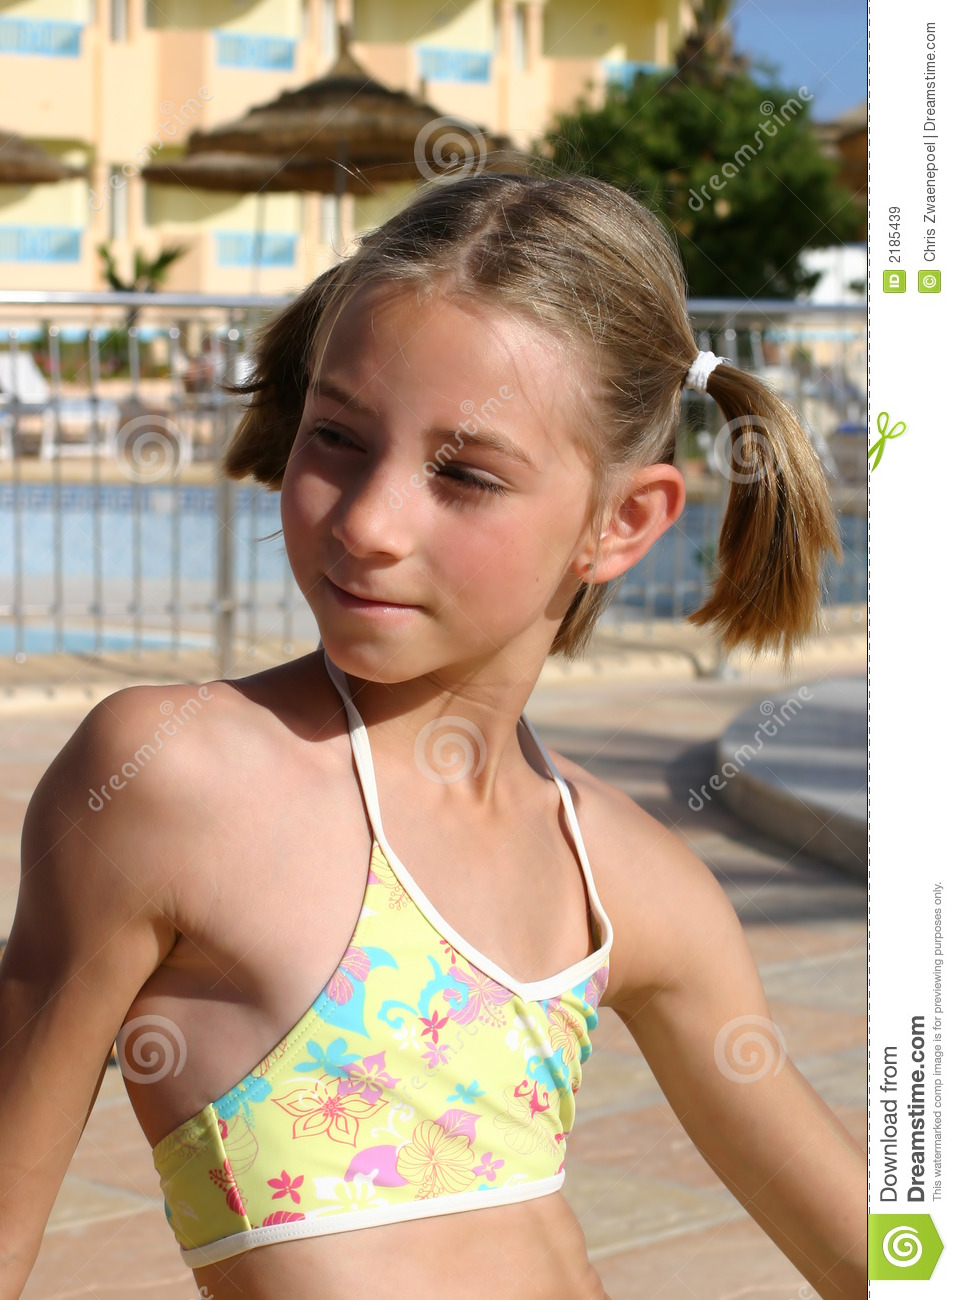 Nudism and Naturism Family Photos and Videos  Waterpark